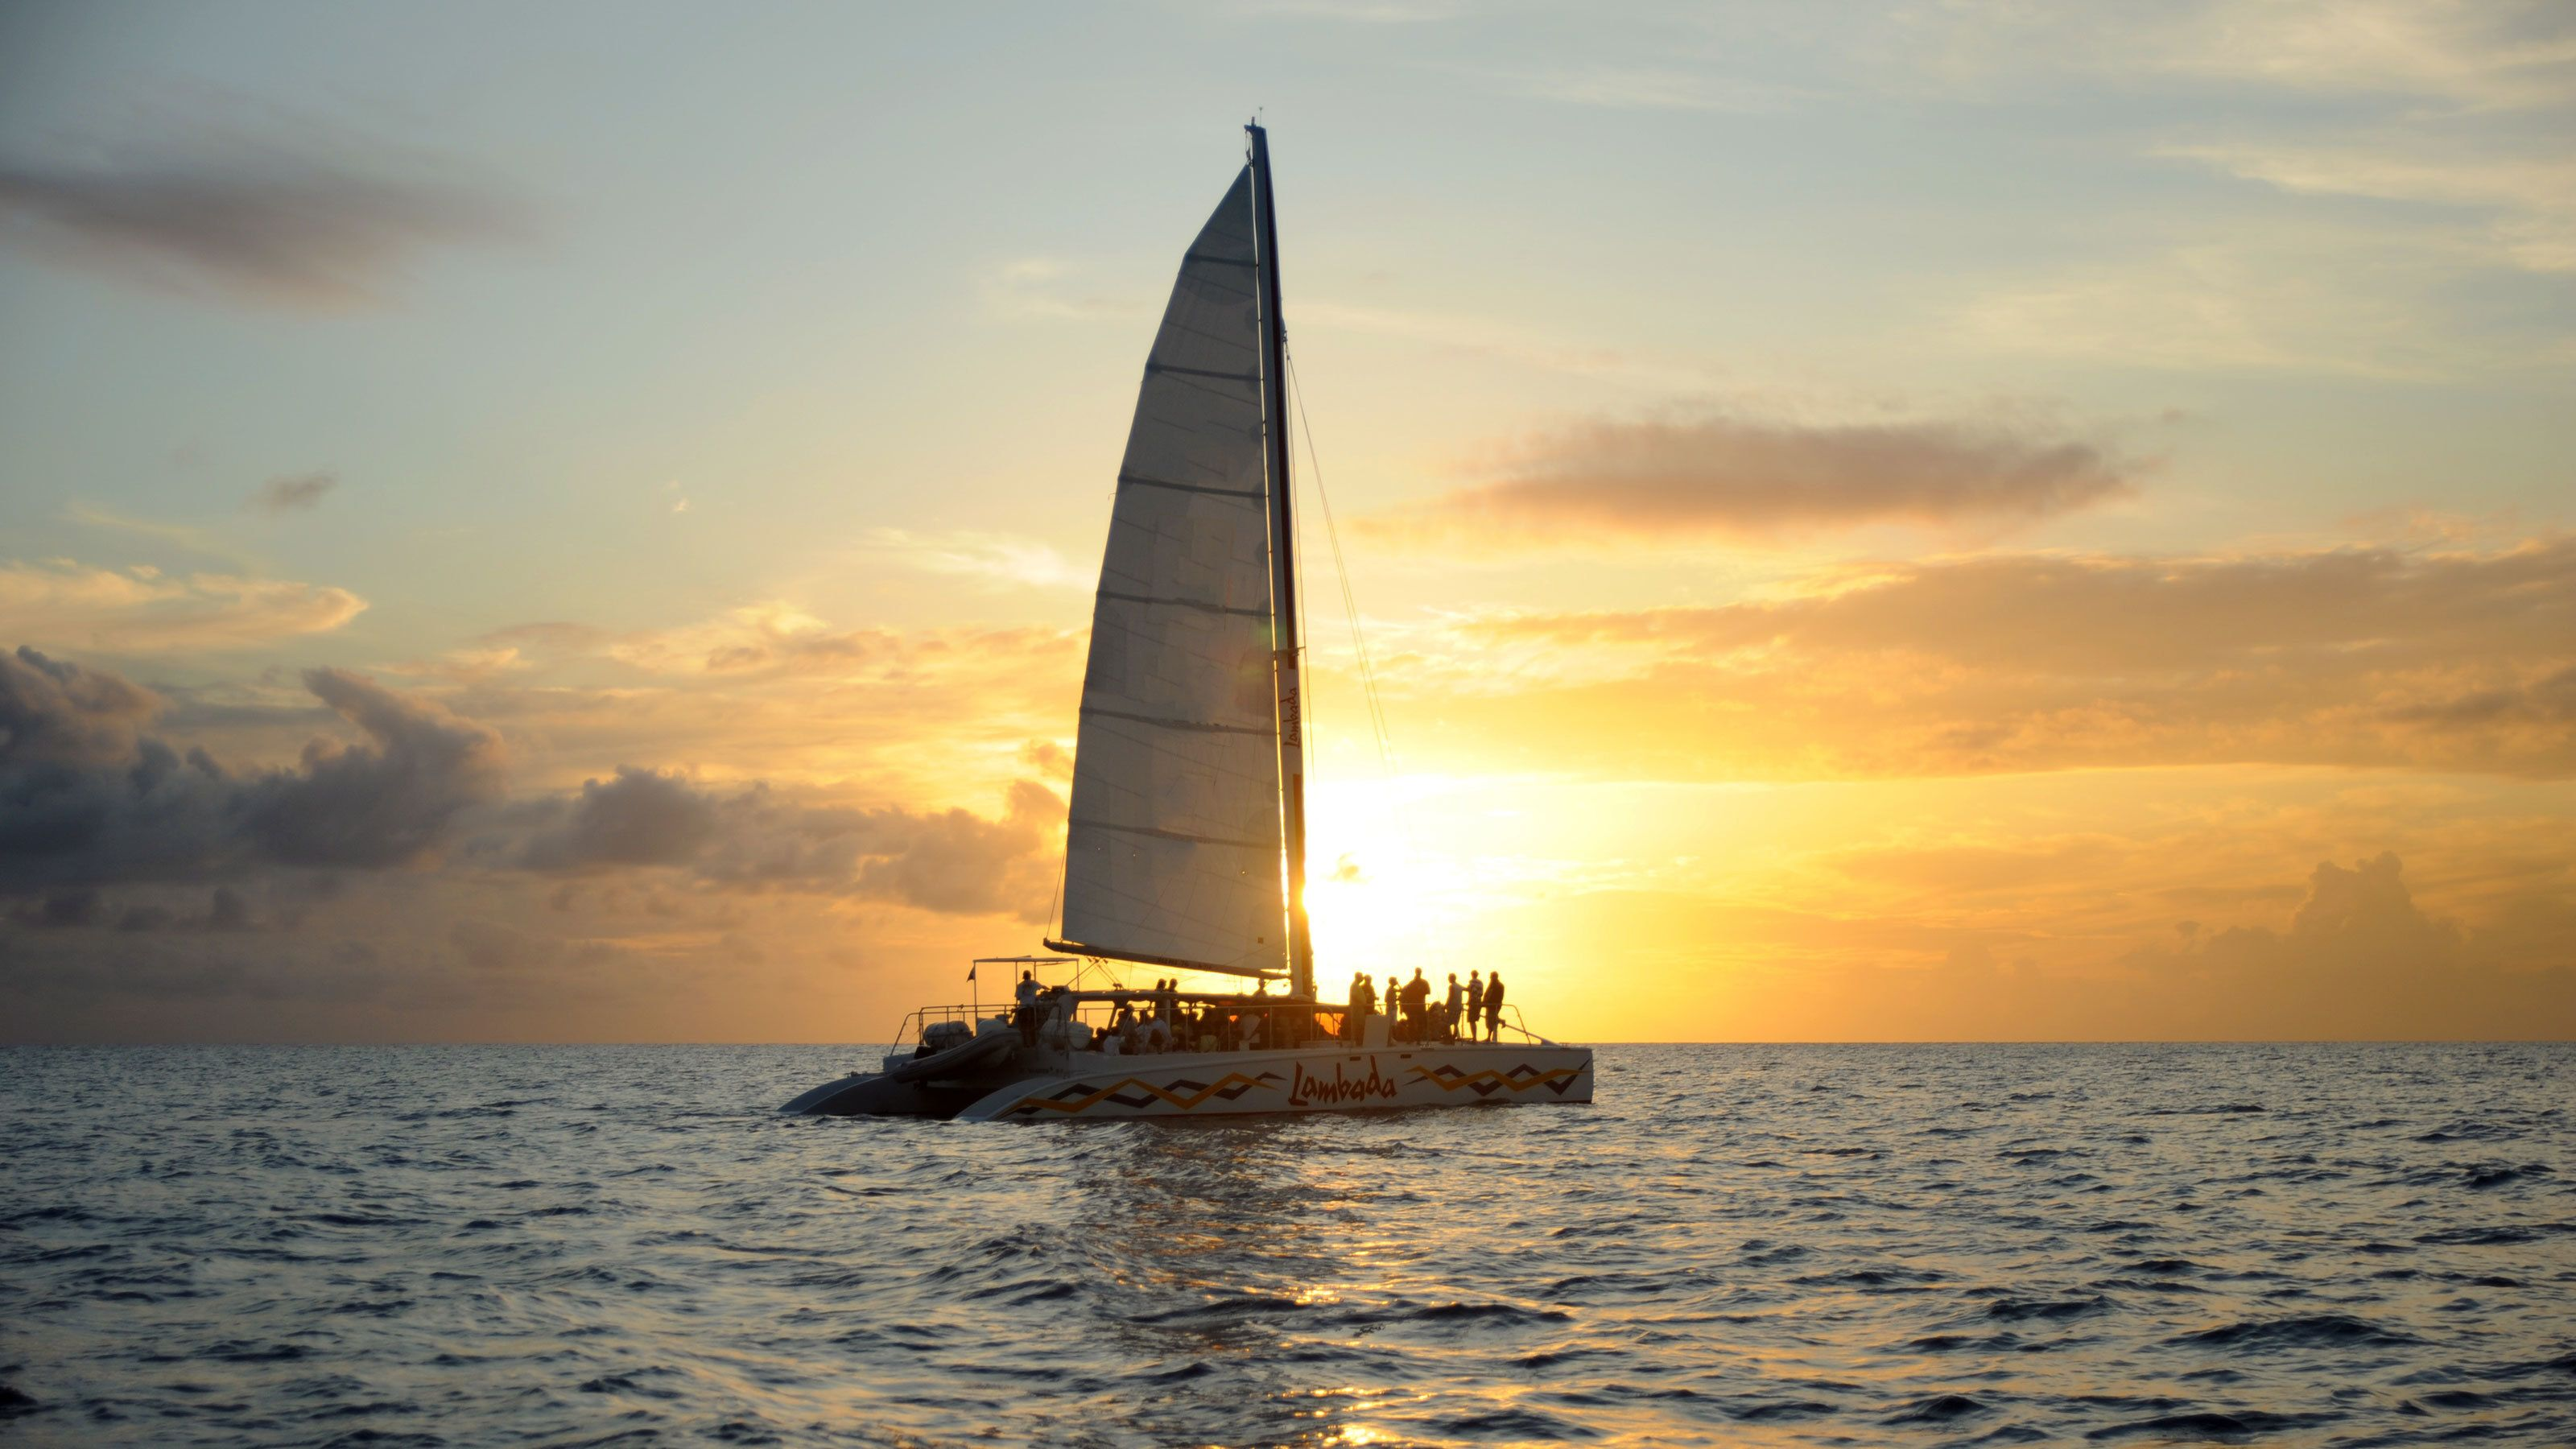 Lambada catamaran sailing through Simpson Bay during sunset